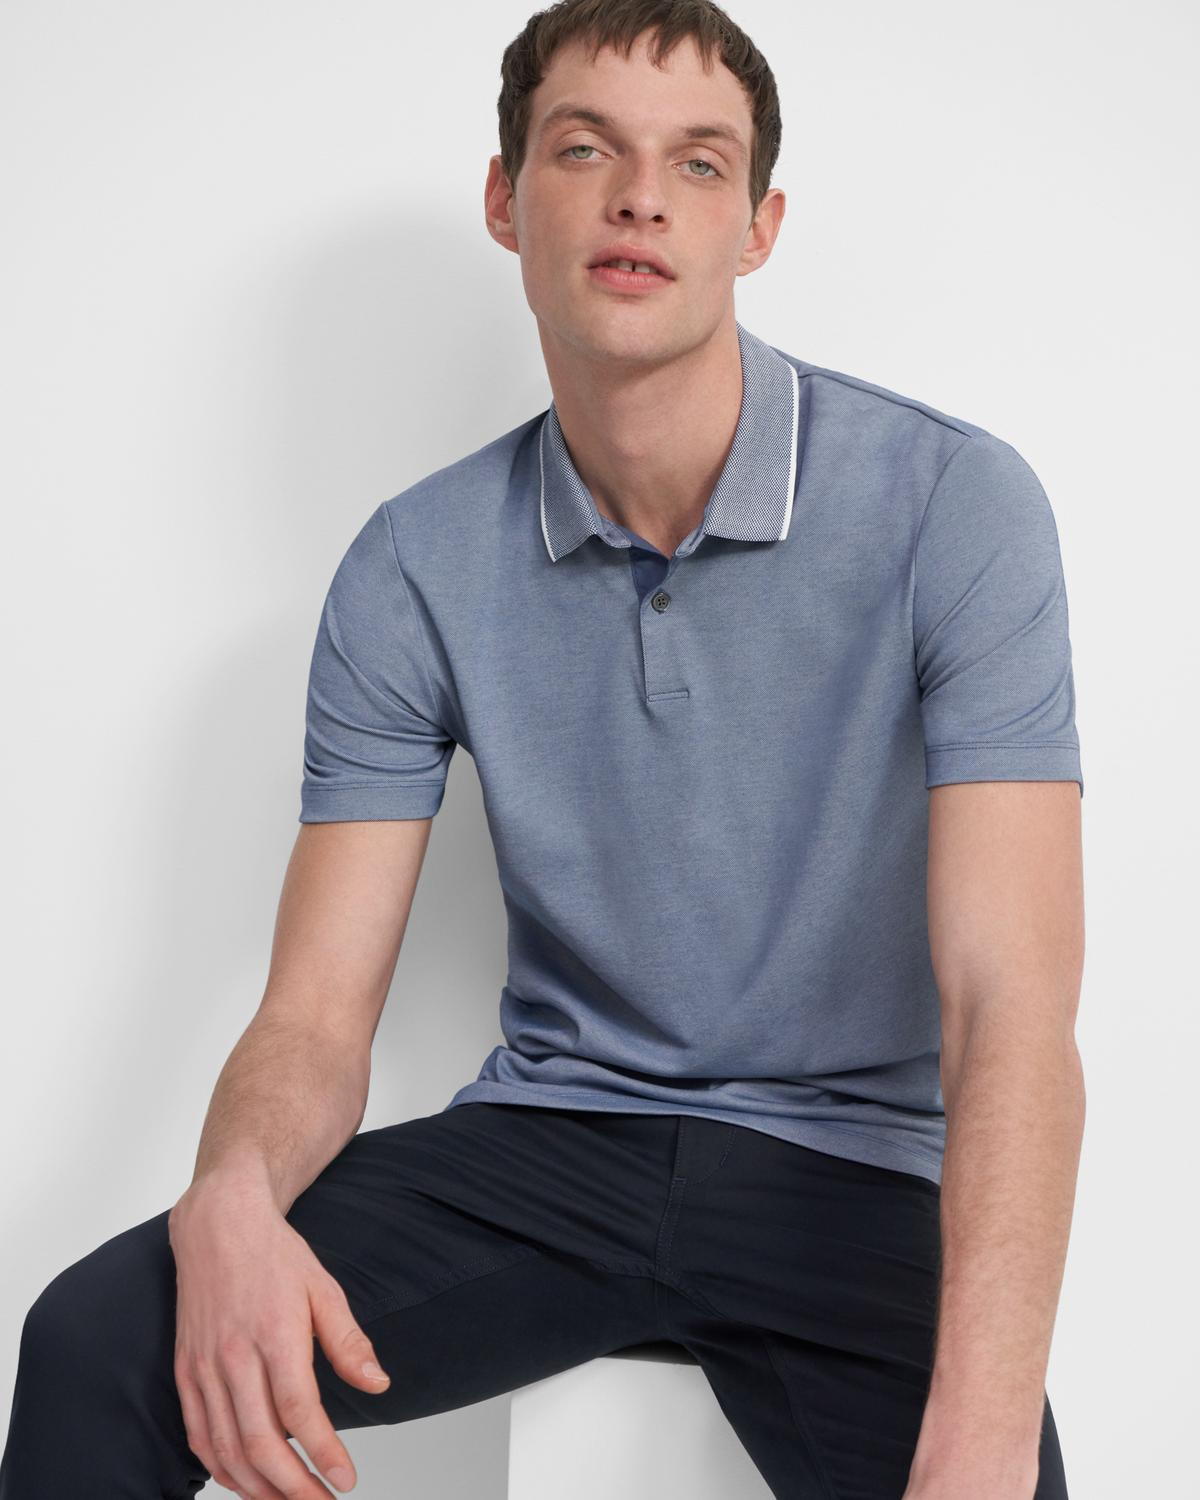 Standard Polo Shirt in Piqué Cotton